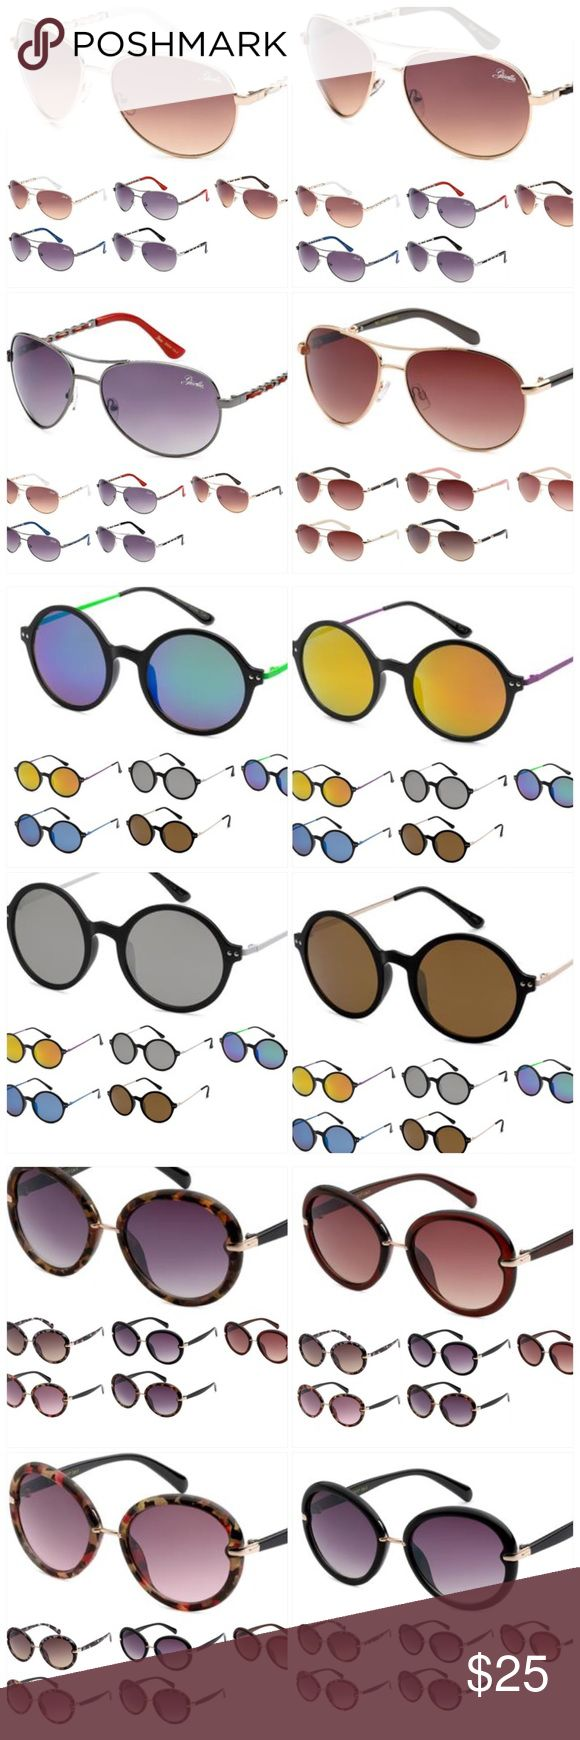 Weekend Sale 3 Sunglasses for 25.00 Grab bag 3 Pairs of Sunglasses for 25.00 Grab Bag. You will receive 3 different pairs of sunglasses. 400UV protection. These are all brand new Accessories Sunglasses